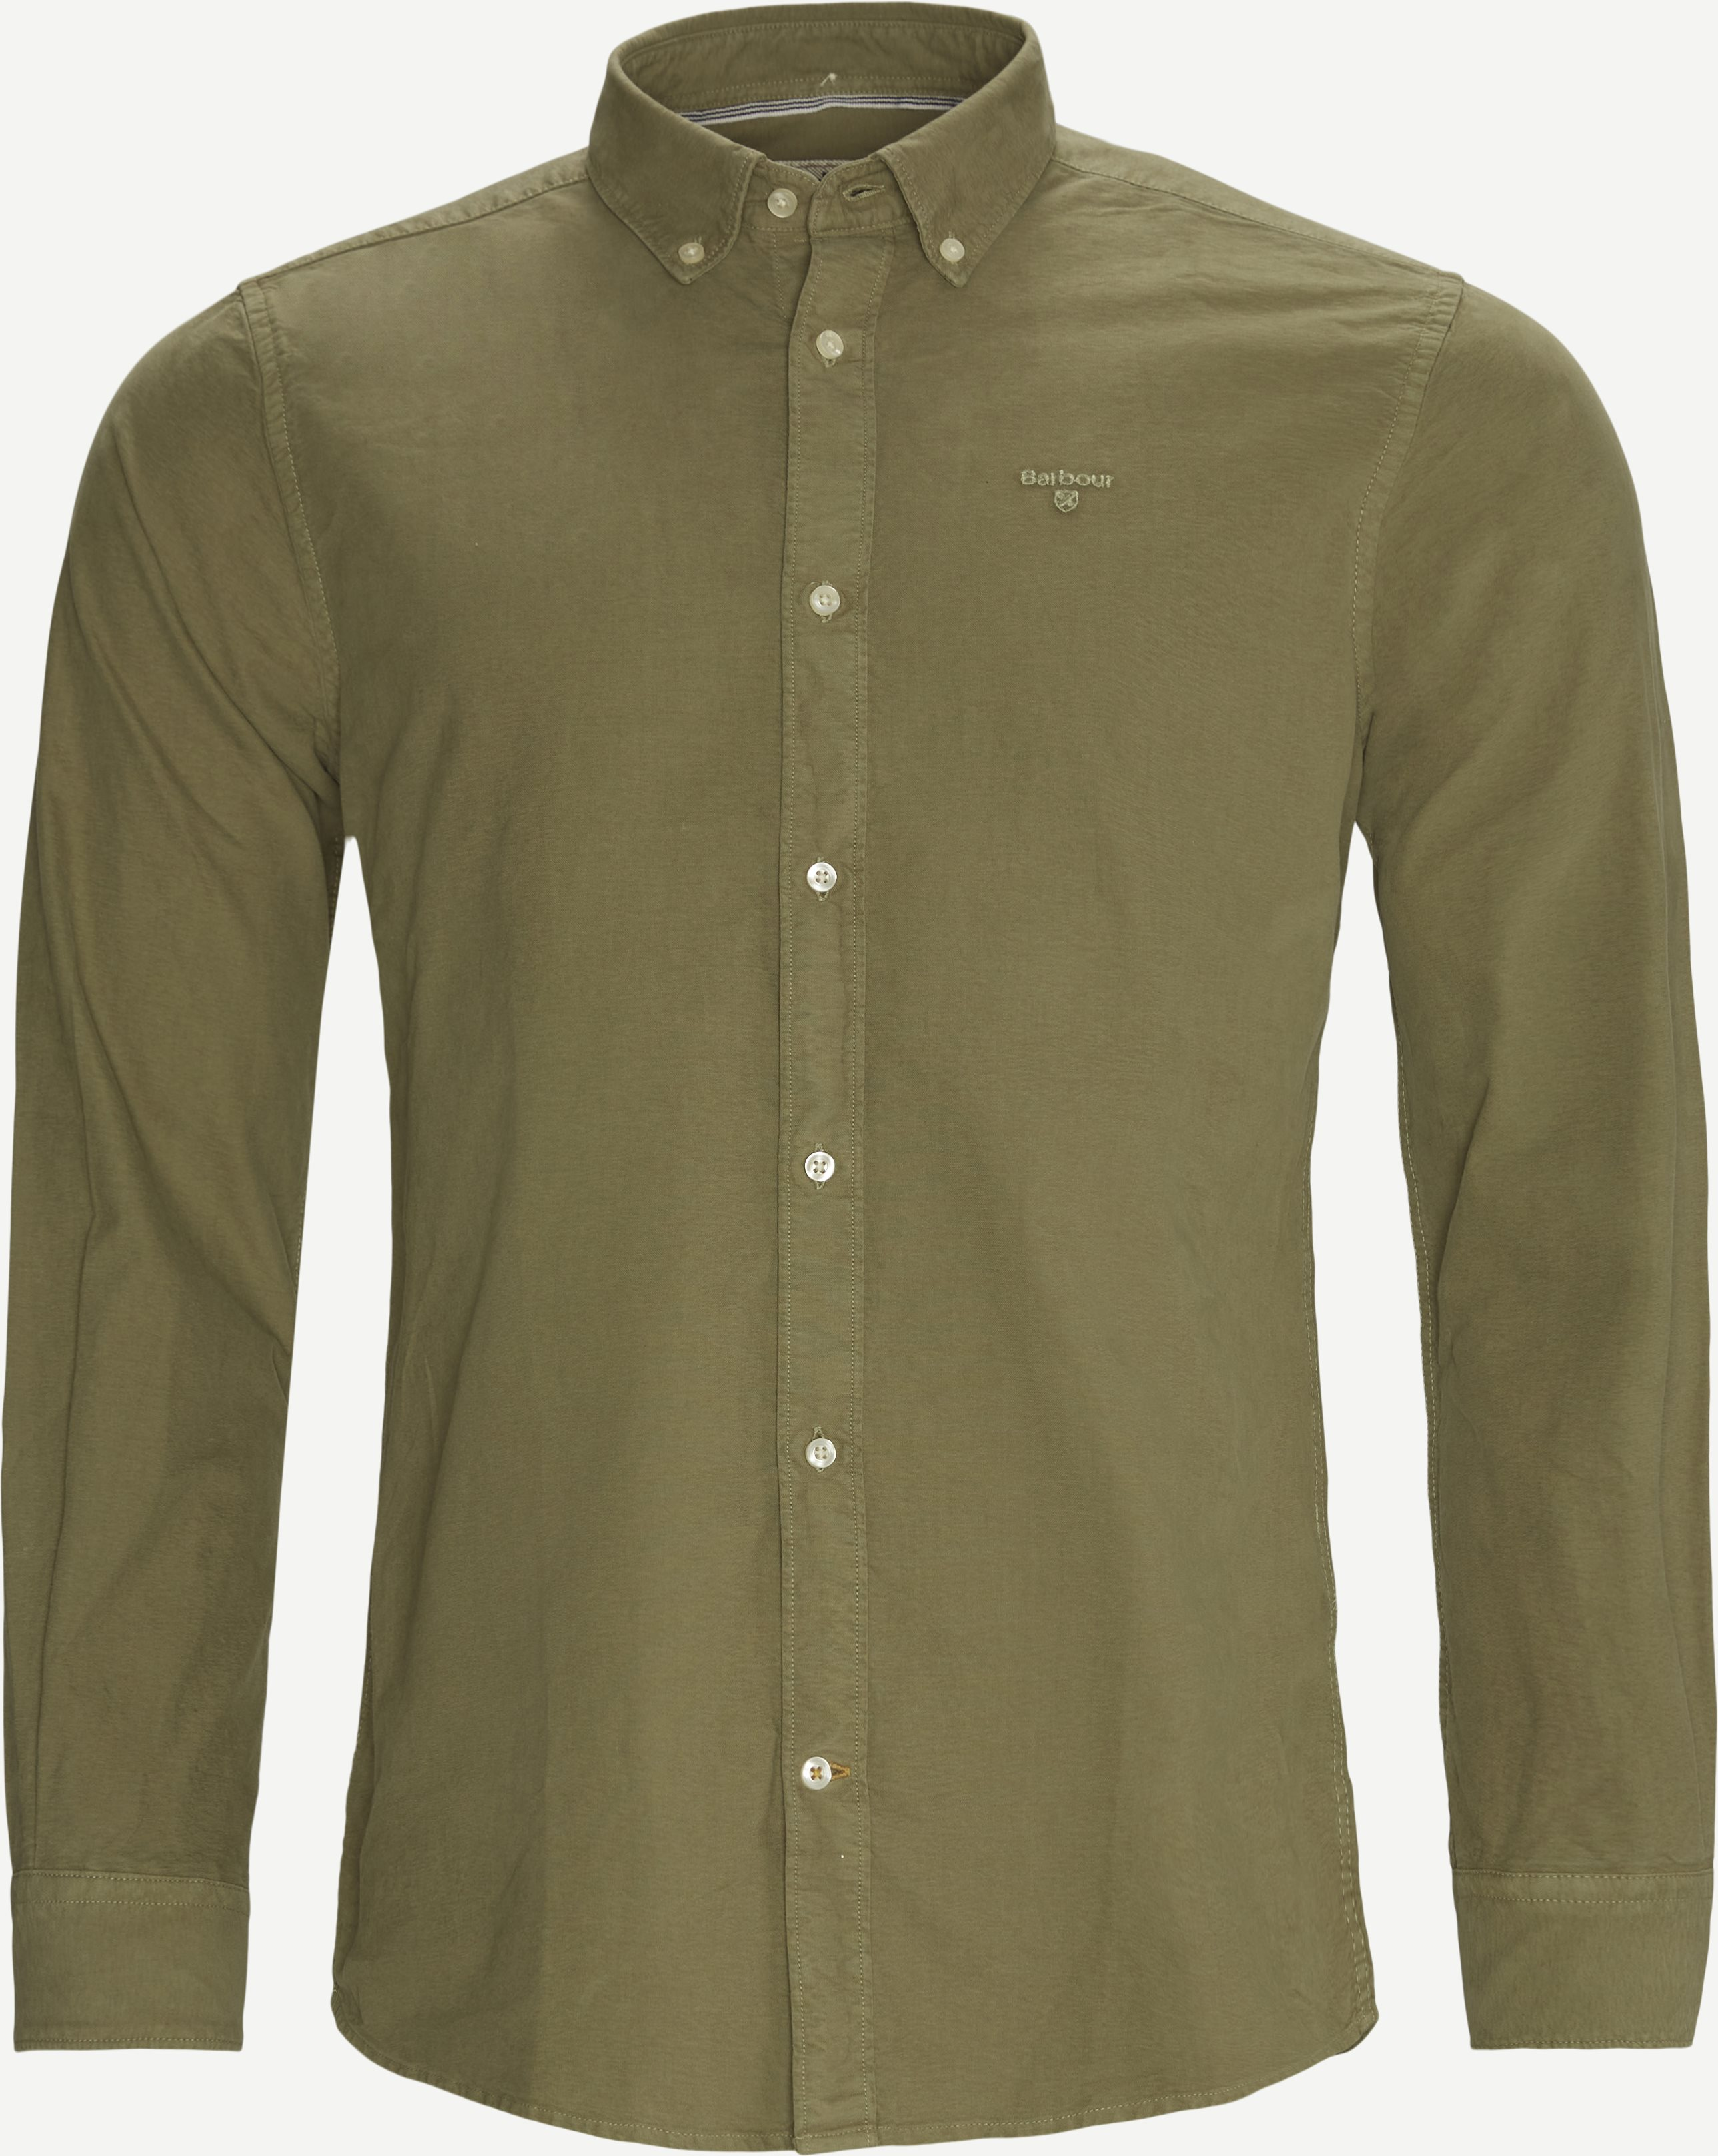 Shirts - Tailored fit - Green